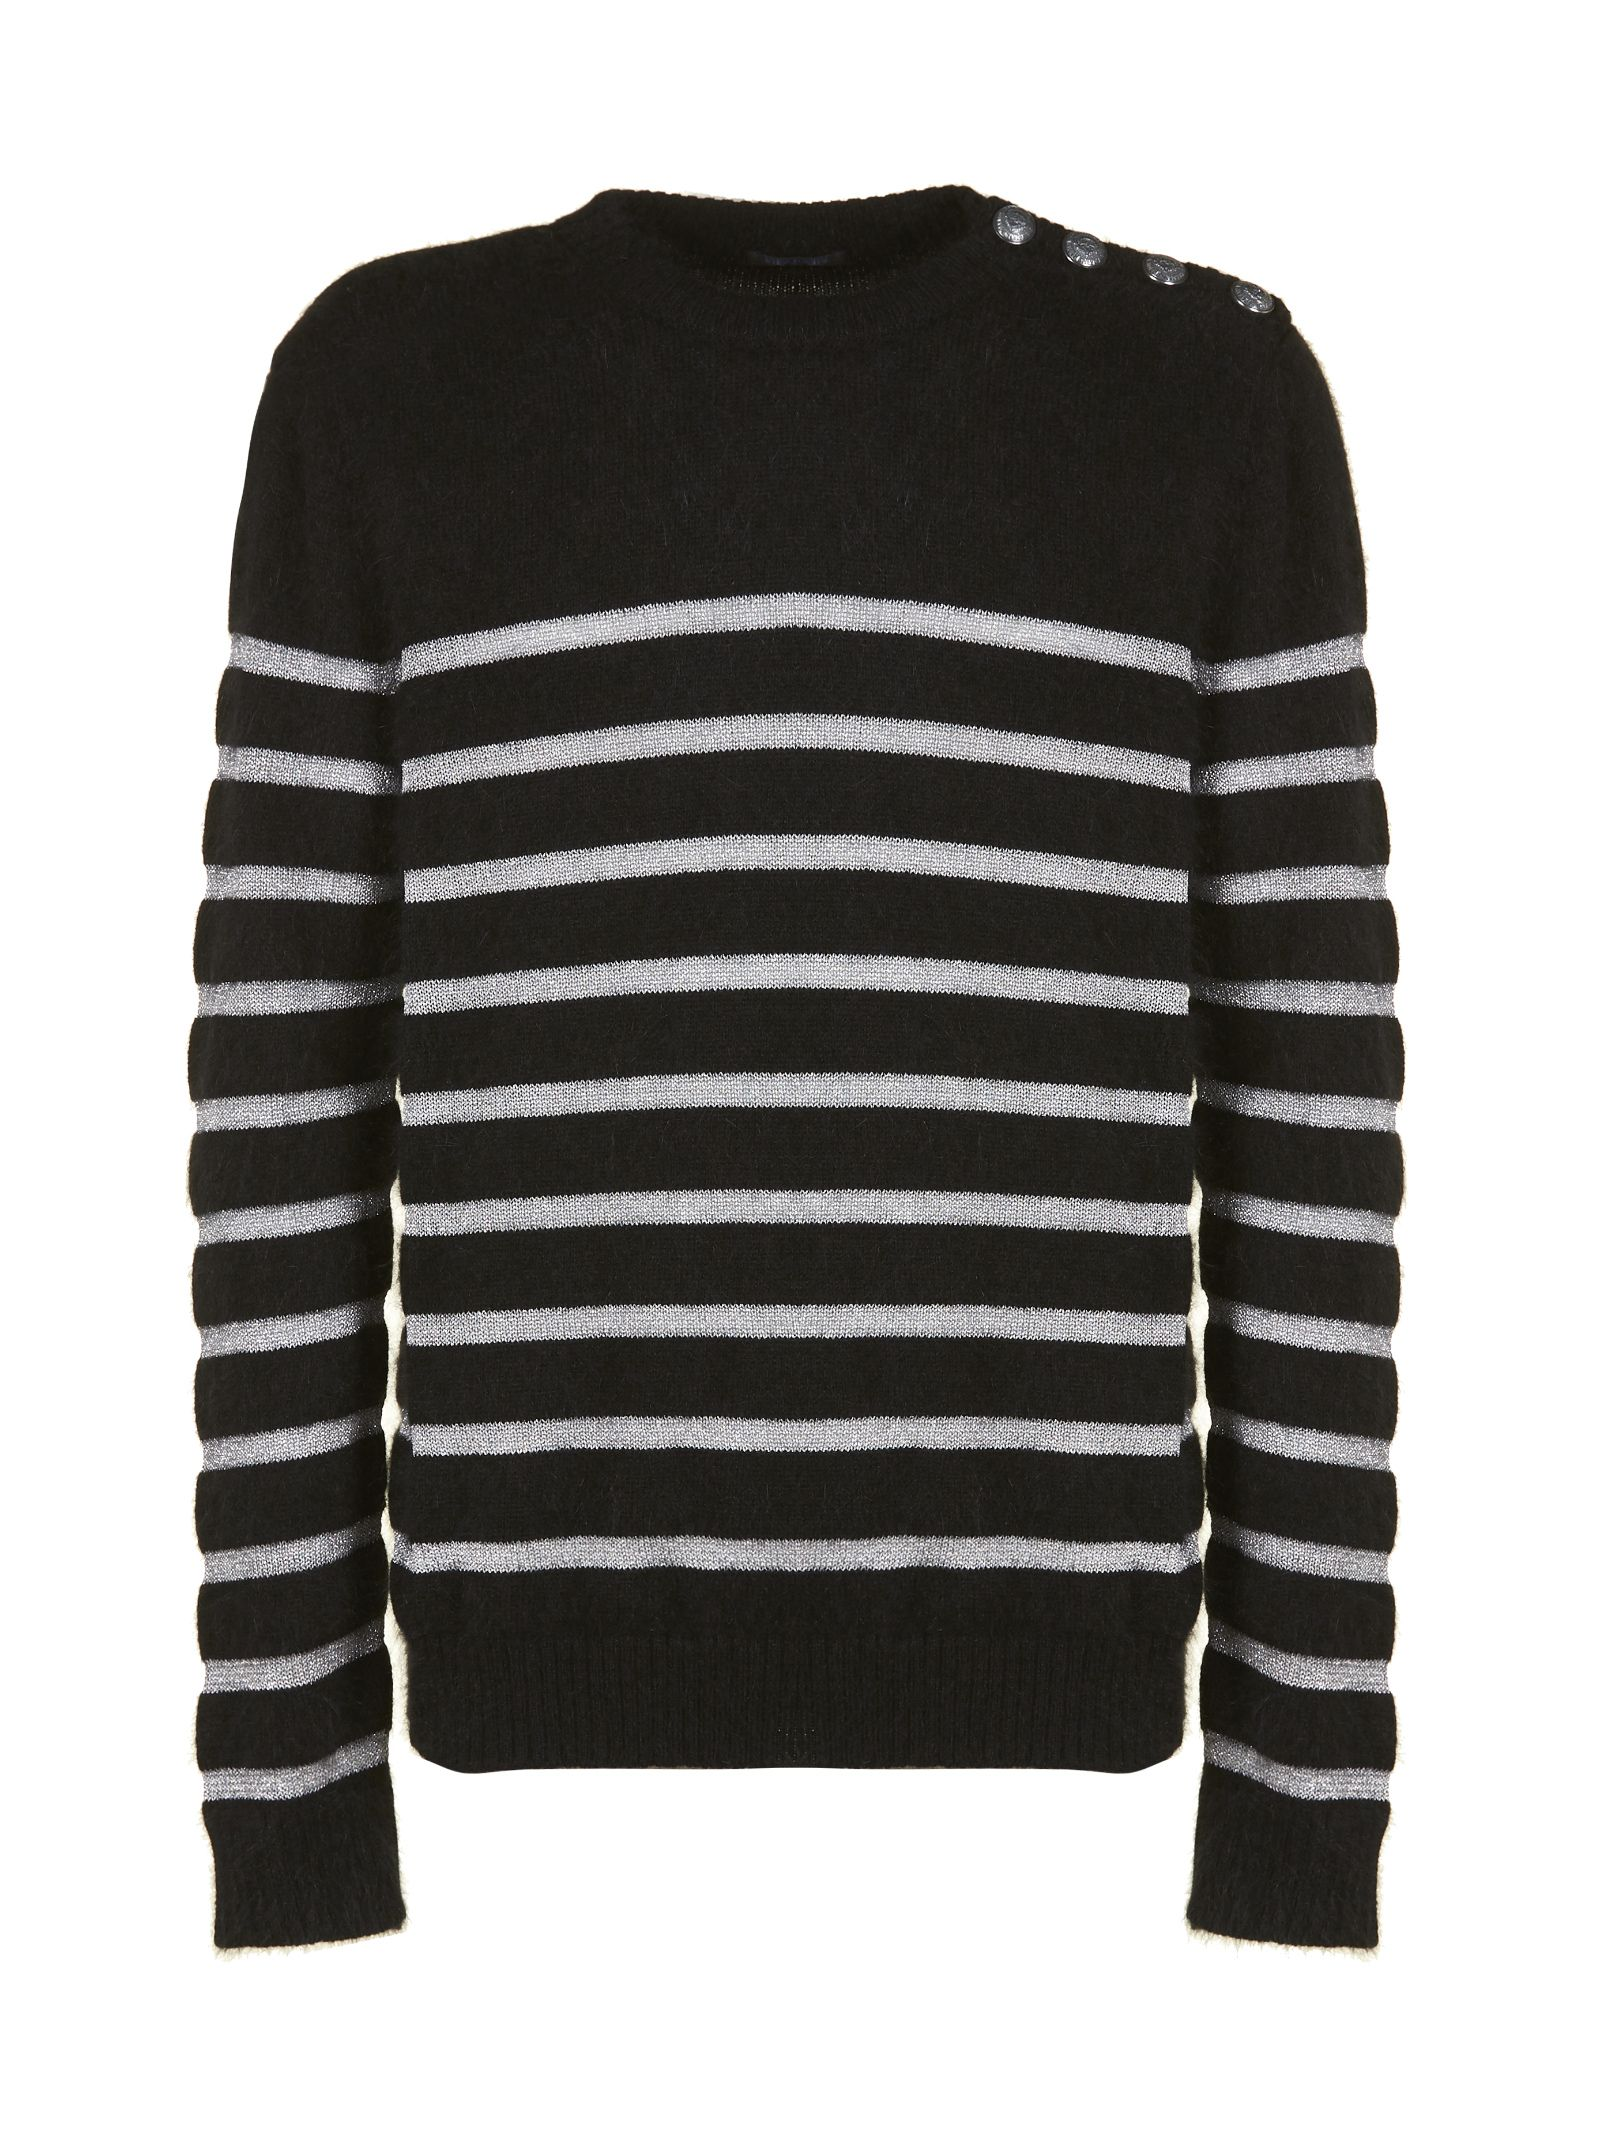 Balmain Stripe Knit Sweater